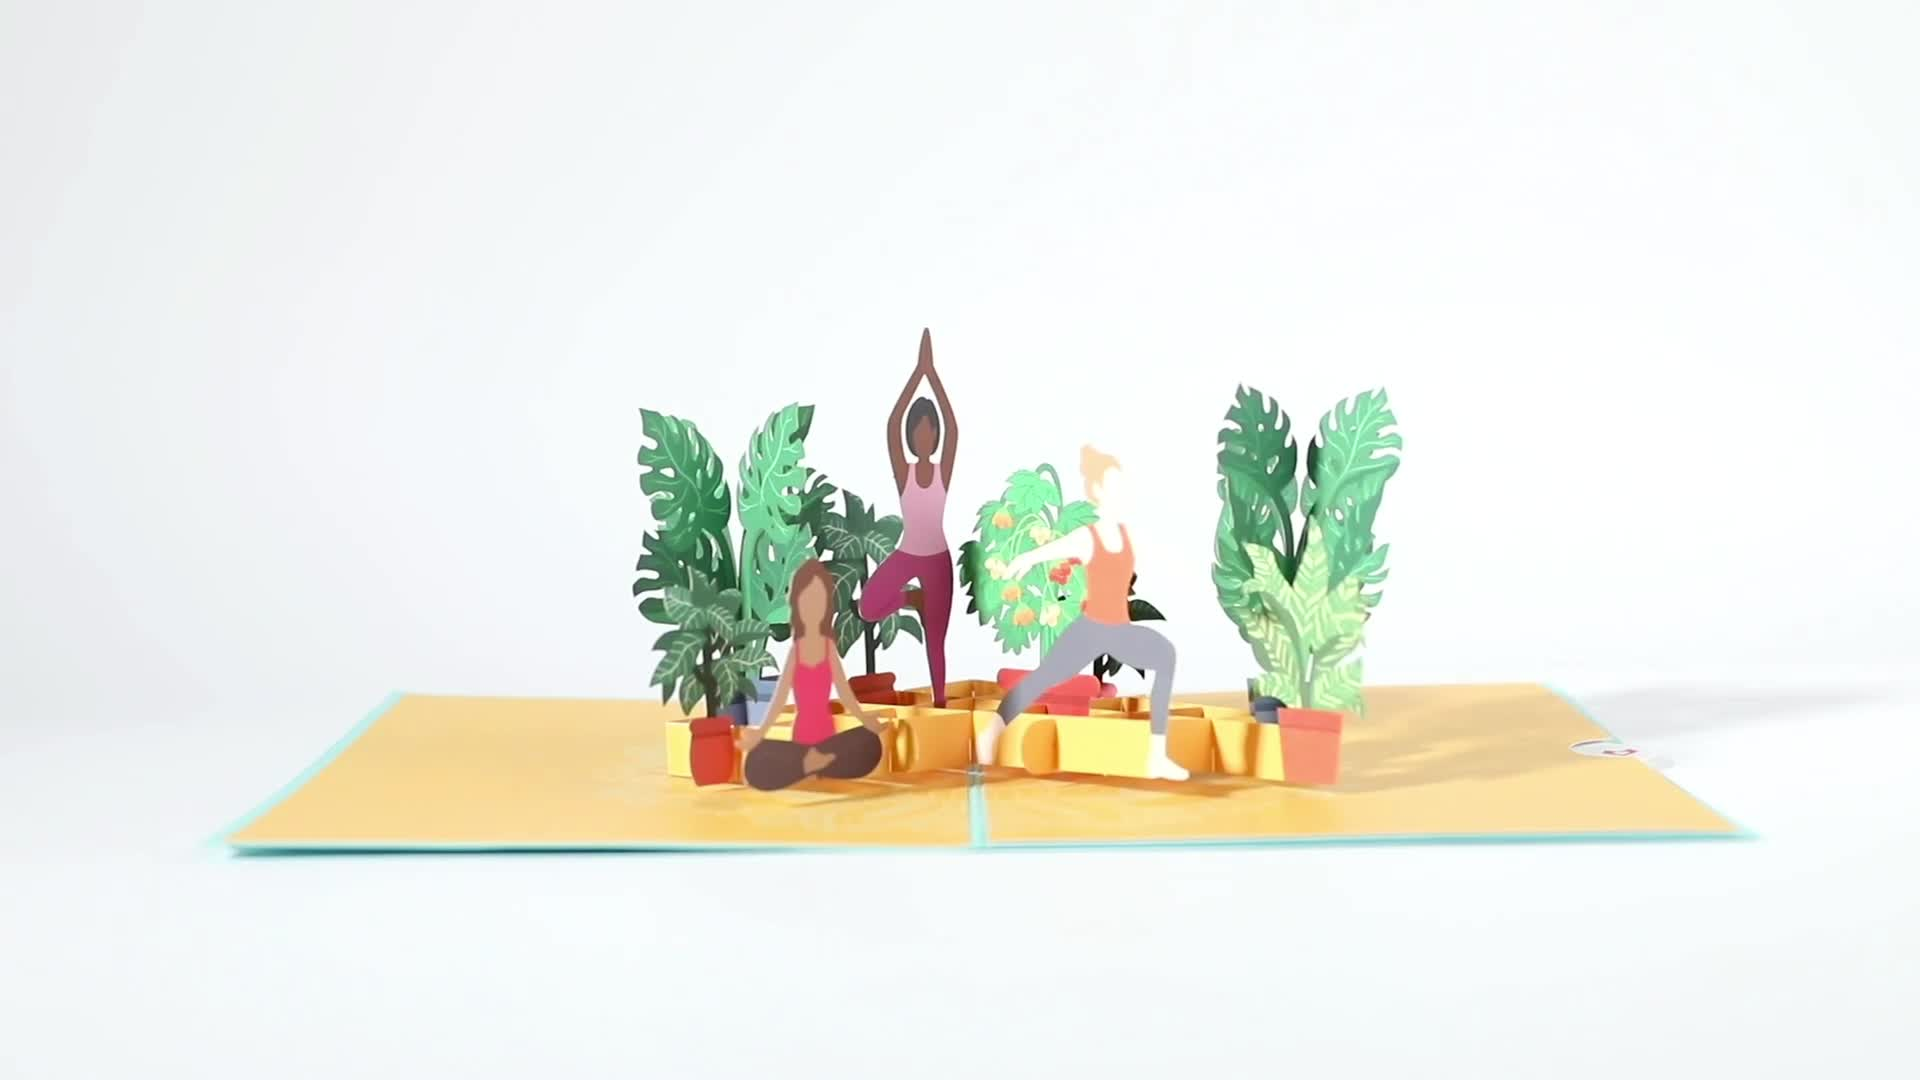 Yoga Poses Pop-Up Card